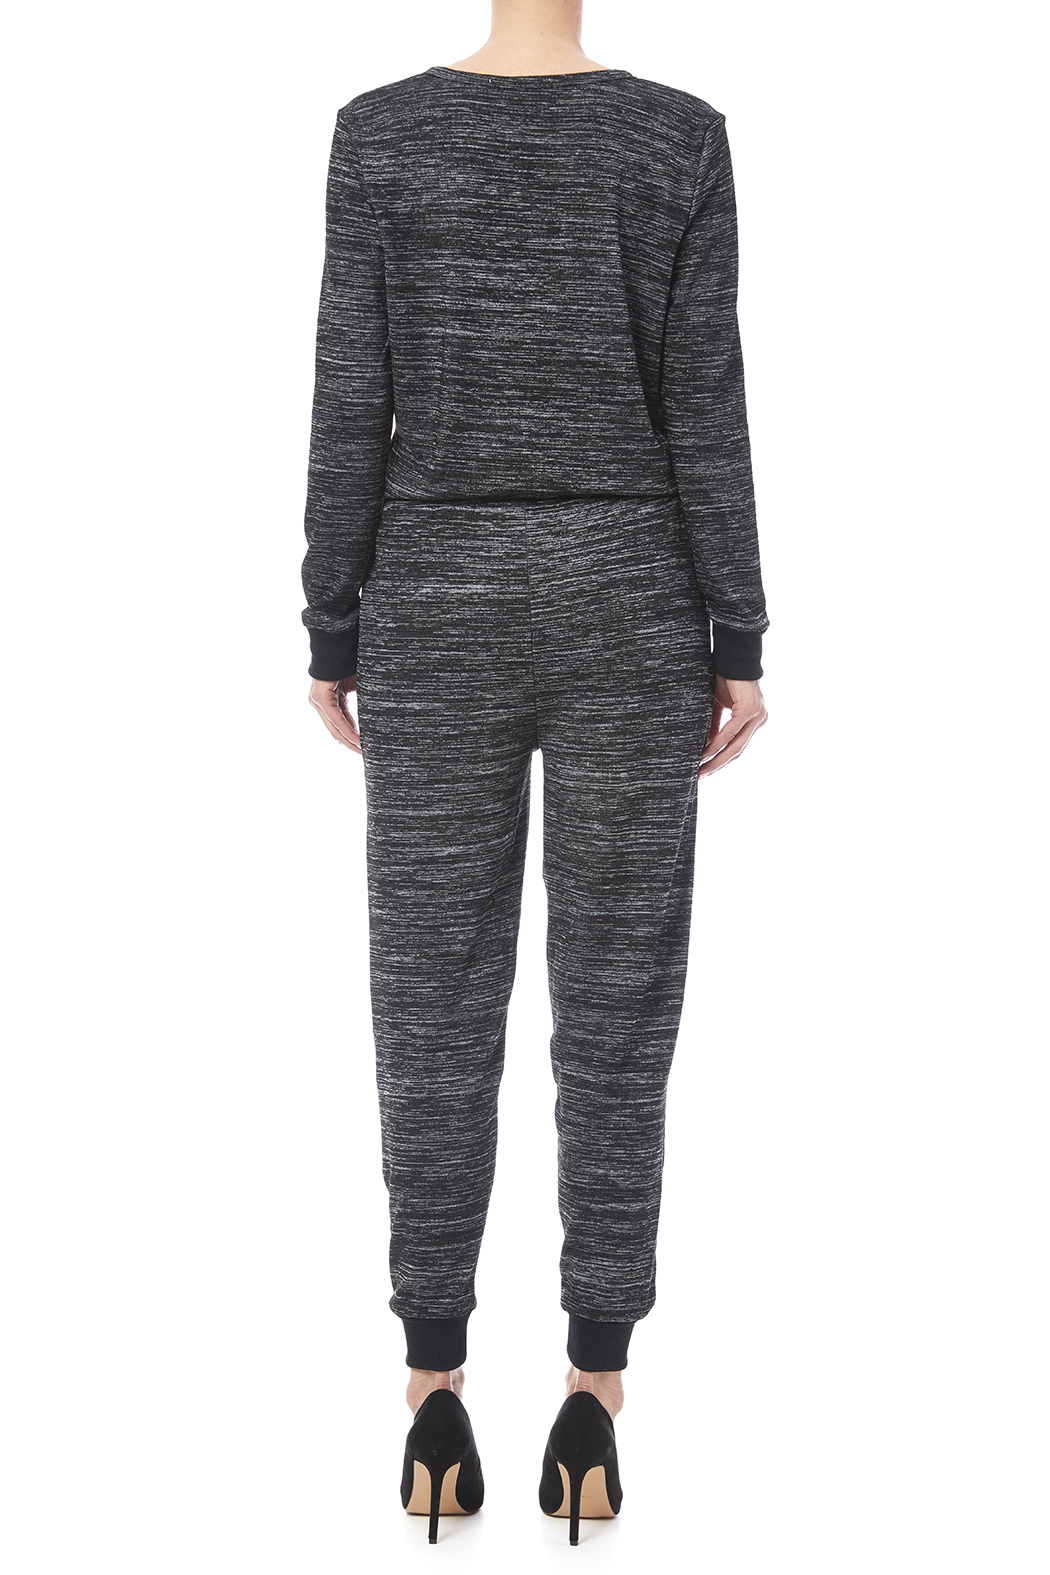 RD Style Trackie Jumpsuit - Back Cropped Image